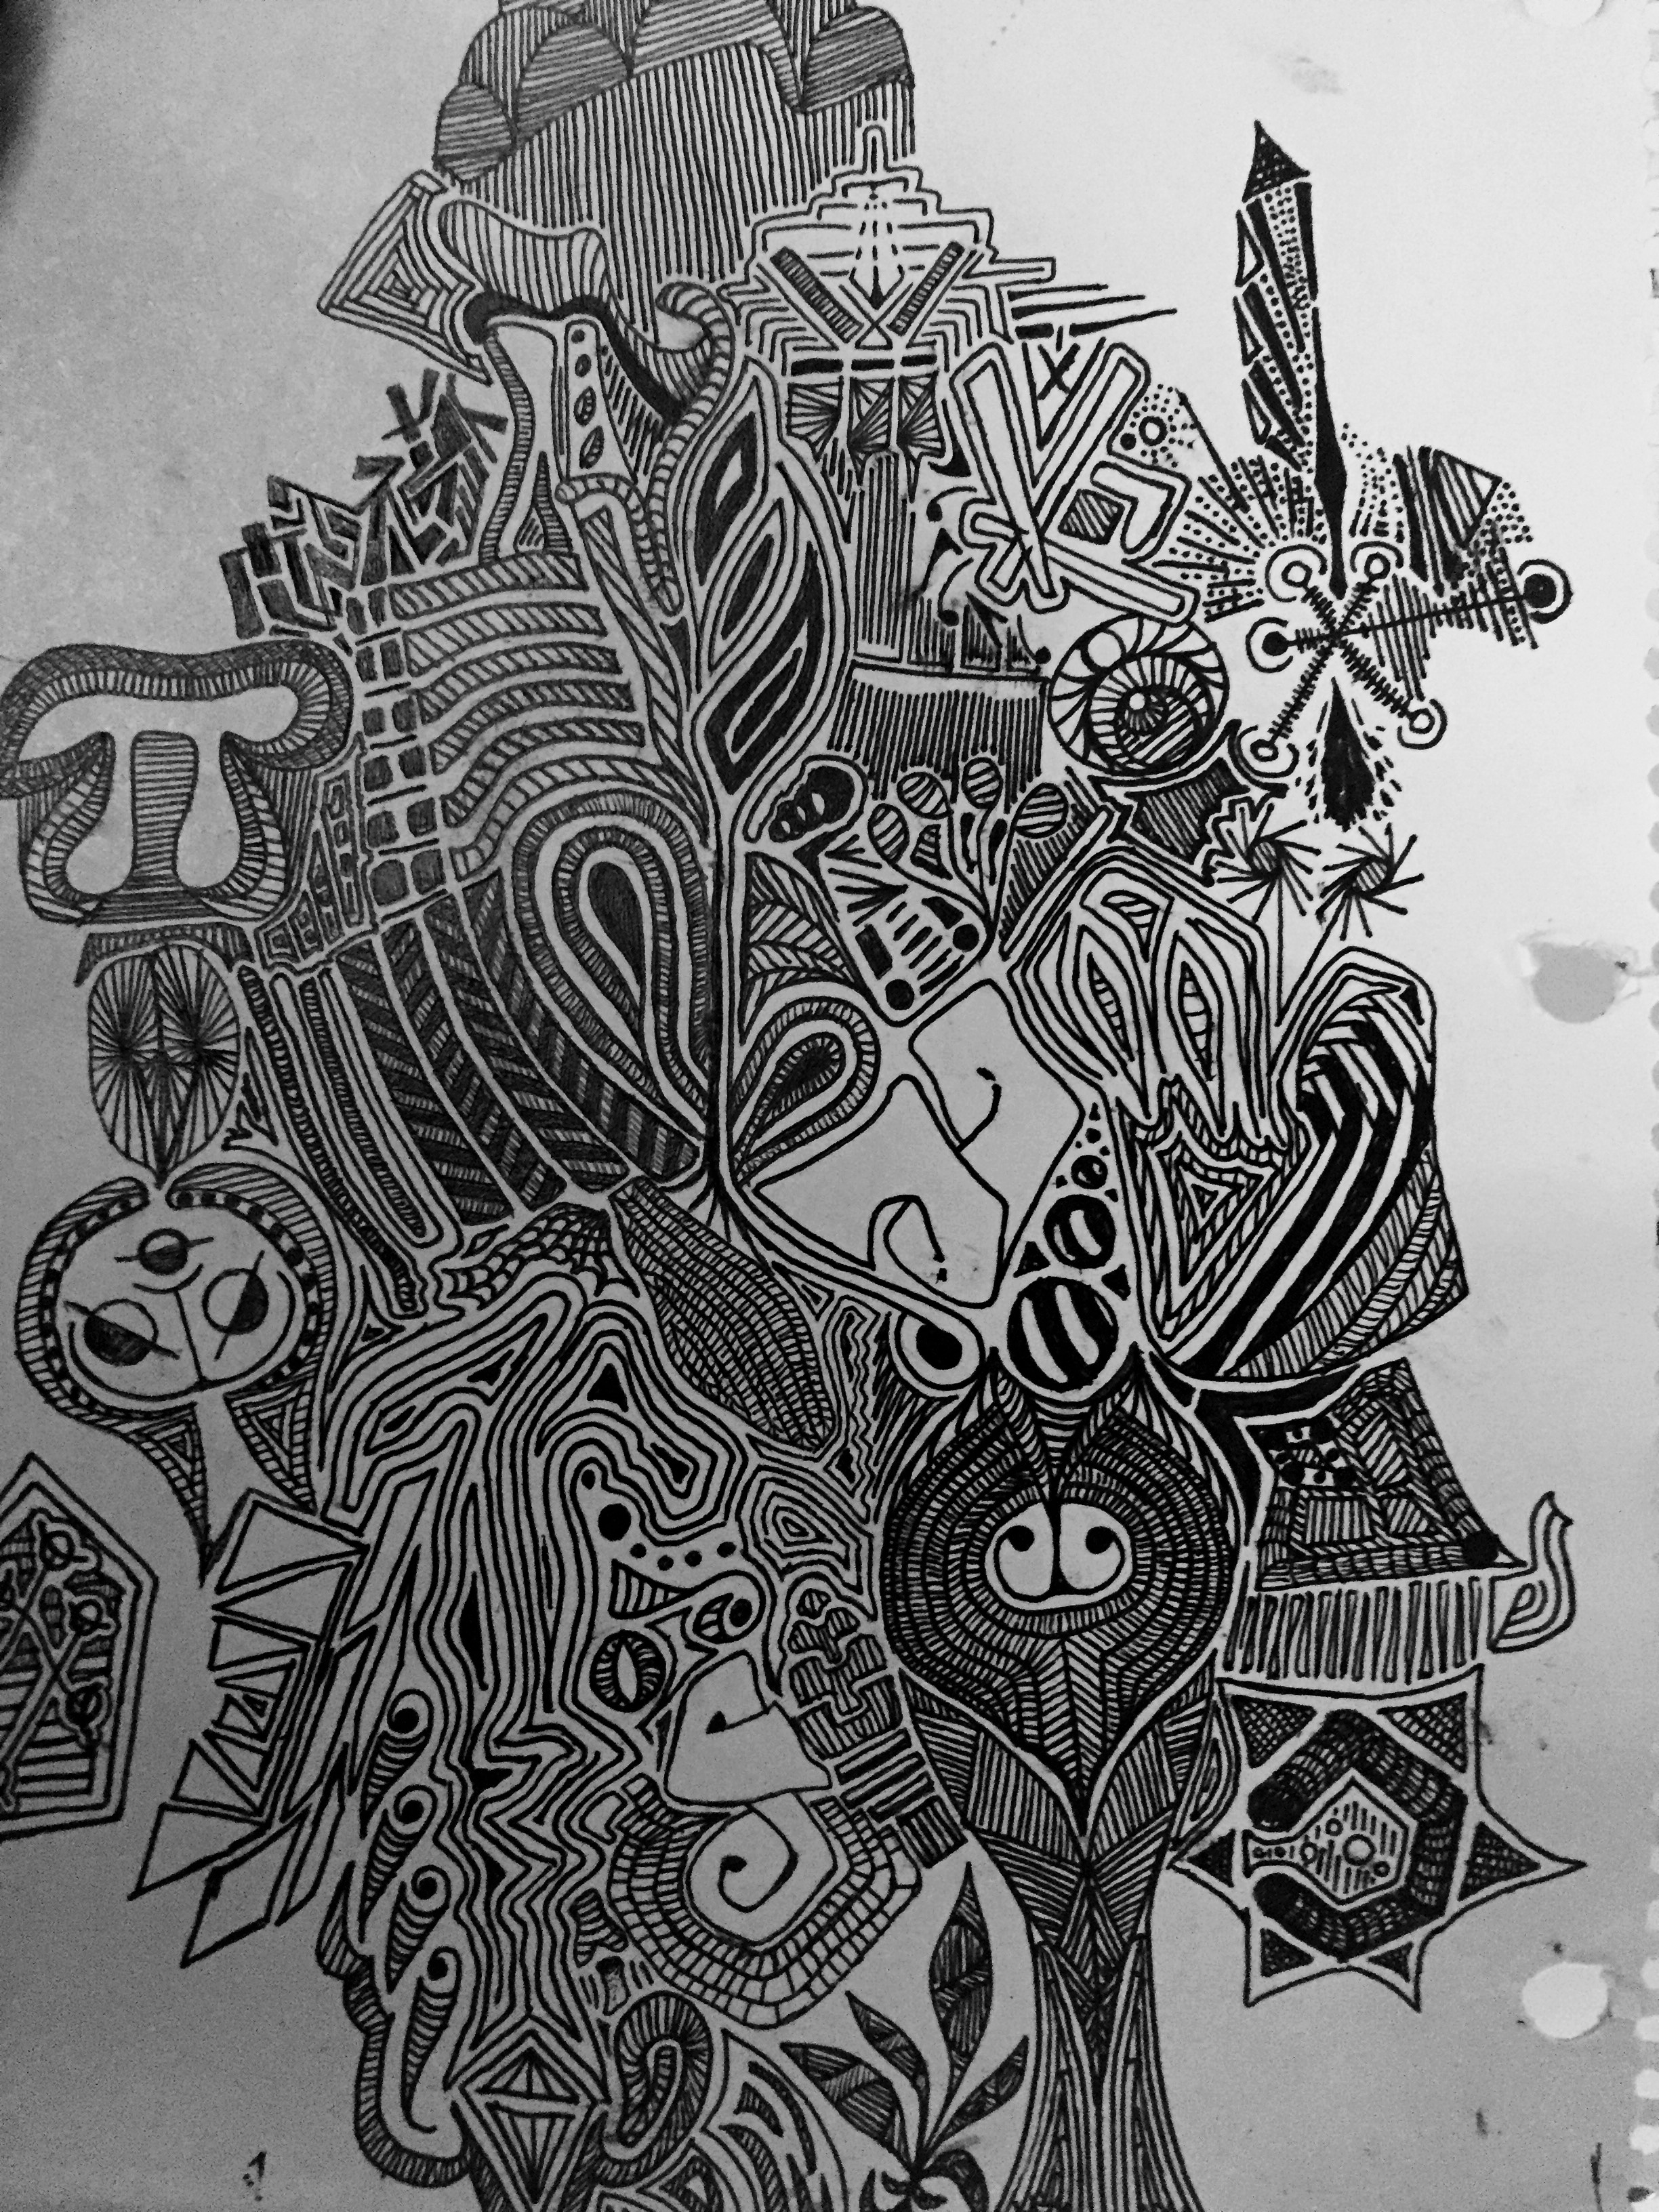 Image was created at some point during high school.